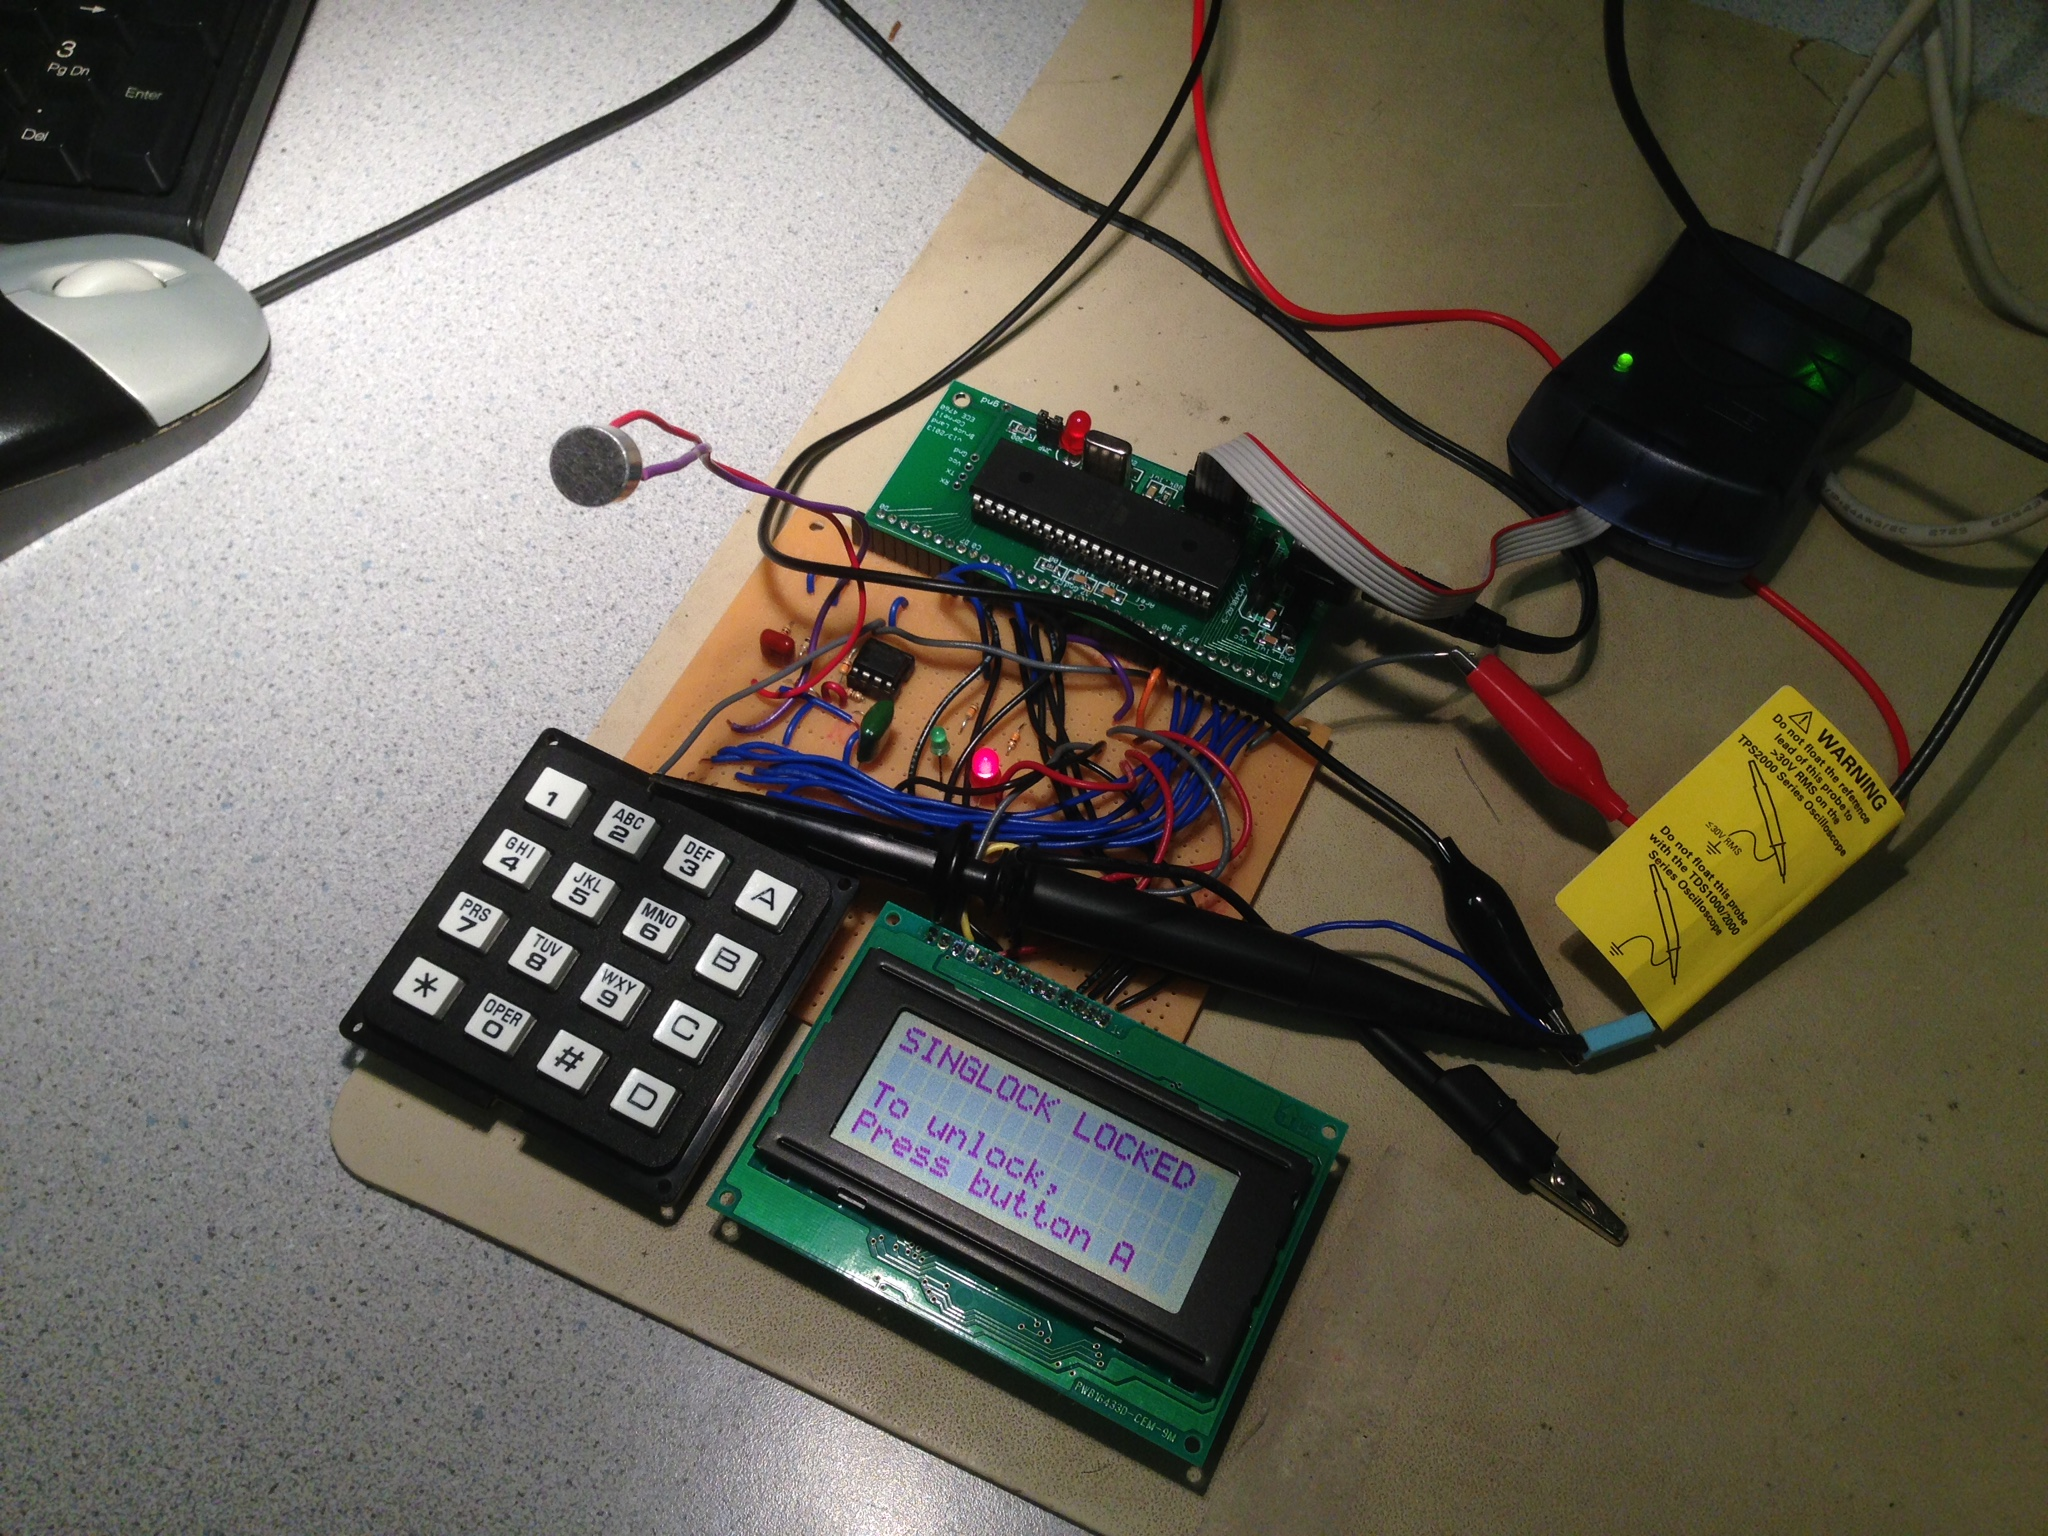 Ece 4760 Final Project Singlock Key Digital Circuit Scheme Using A Password System